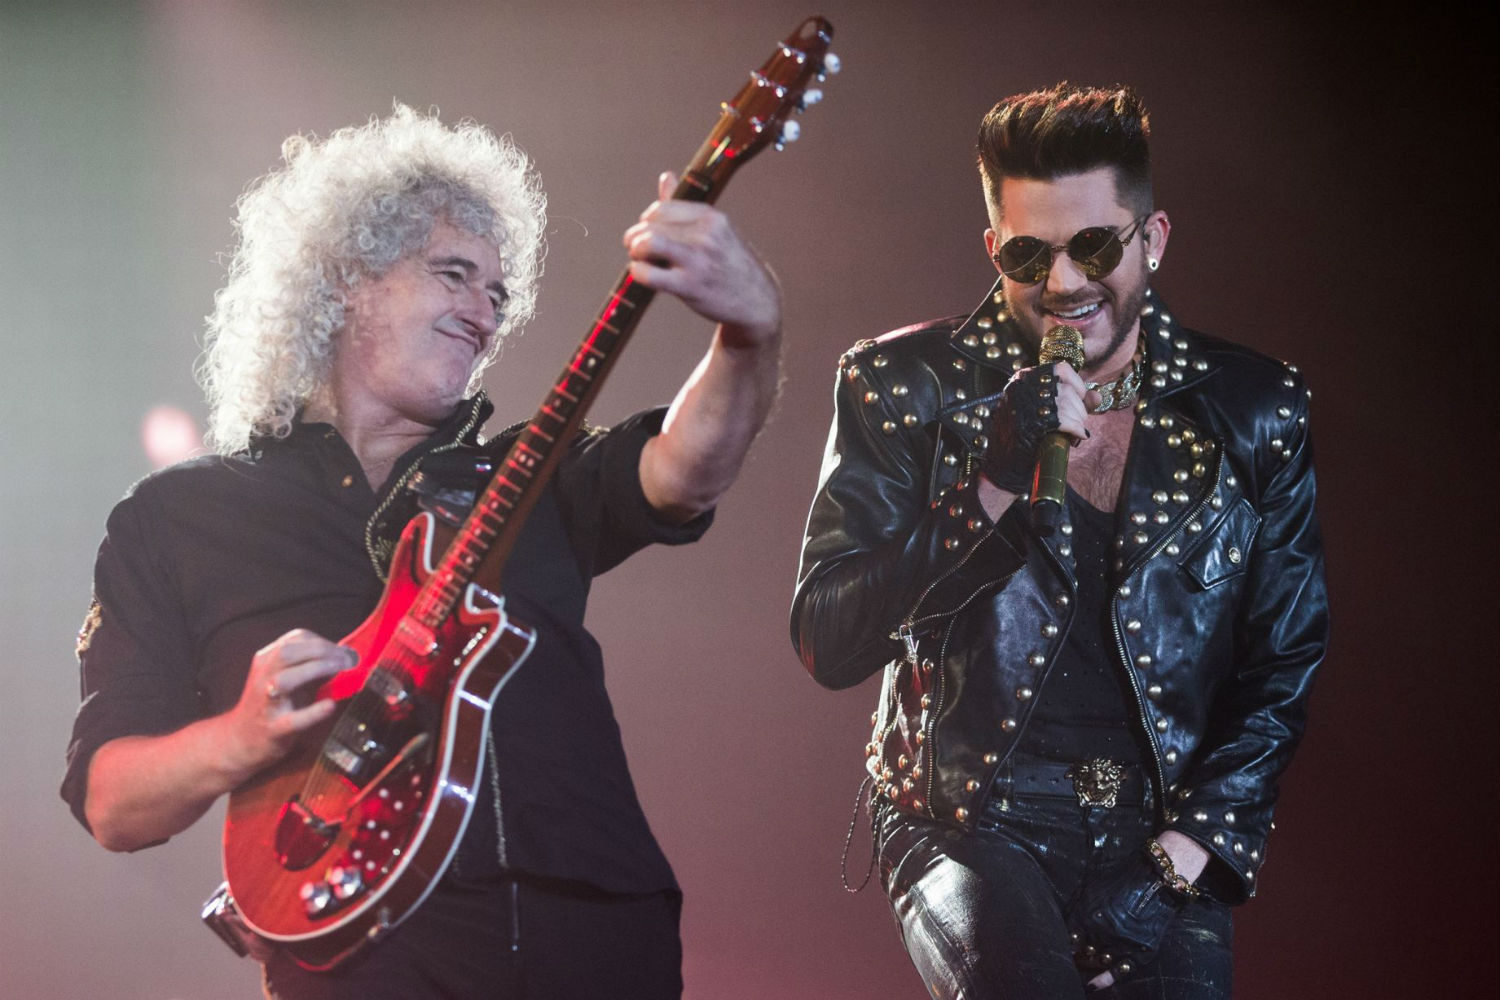 Adam Lambert With Queen : adam lambert hits back at 39 homophobic 39 petition as it gains 20 000 signatures pinknews pinknews ~ Vivirlamusica.com Haus und Dekorationen